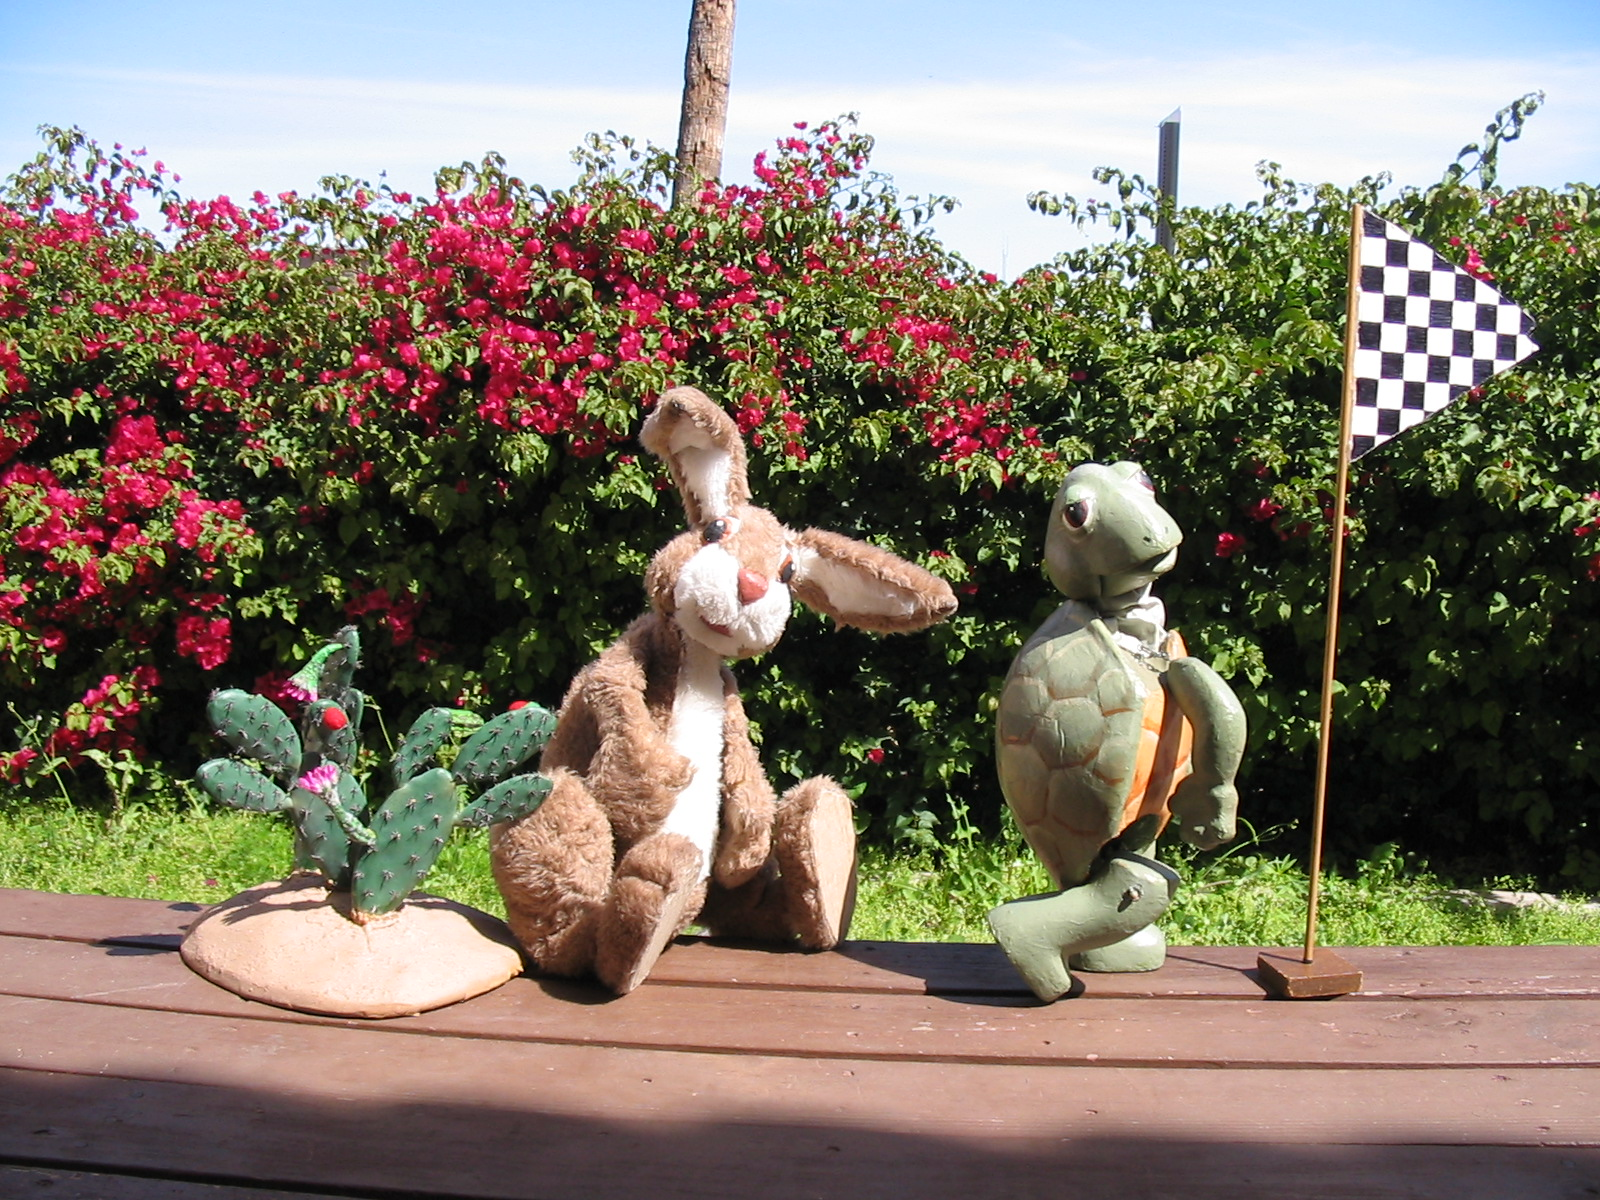 The Great Arizona Puppet Theatre provides entertainment for all ages.